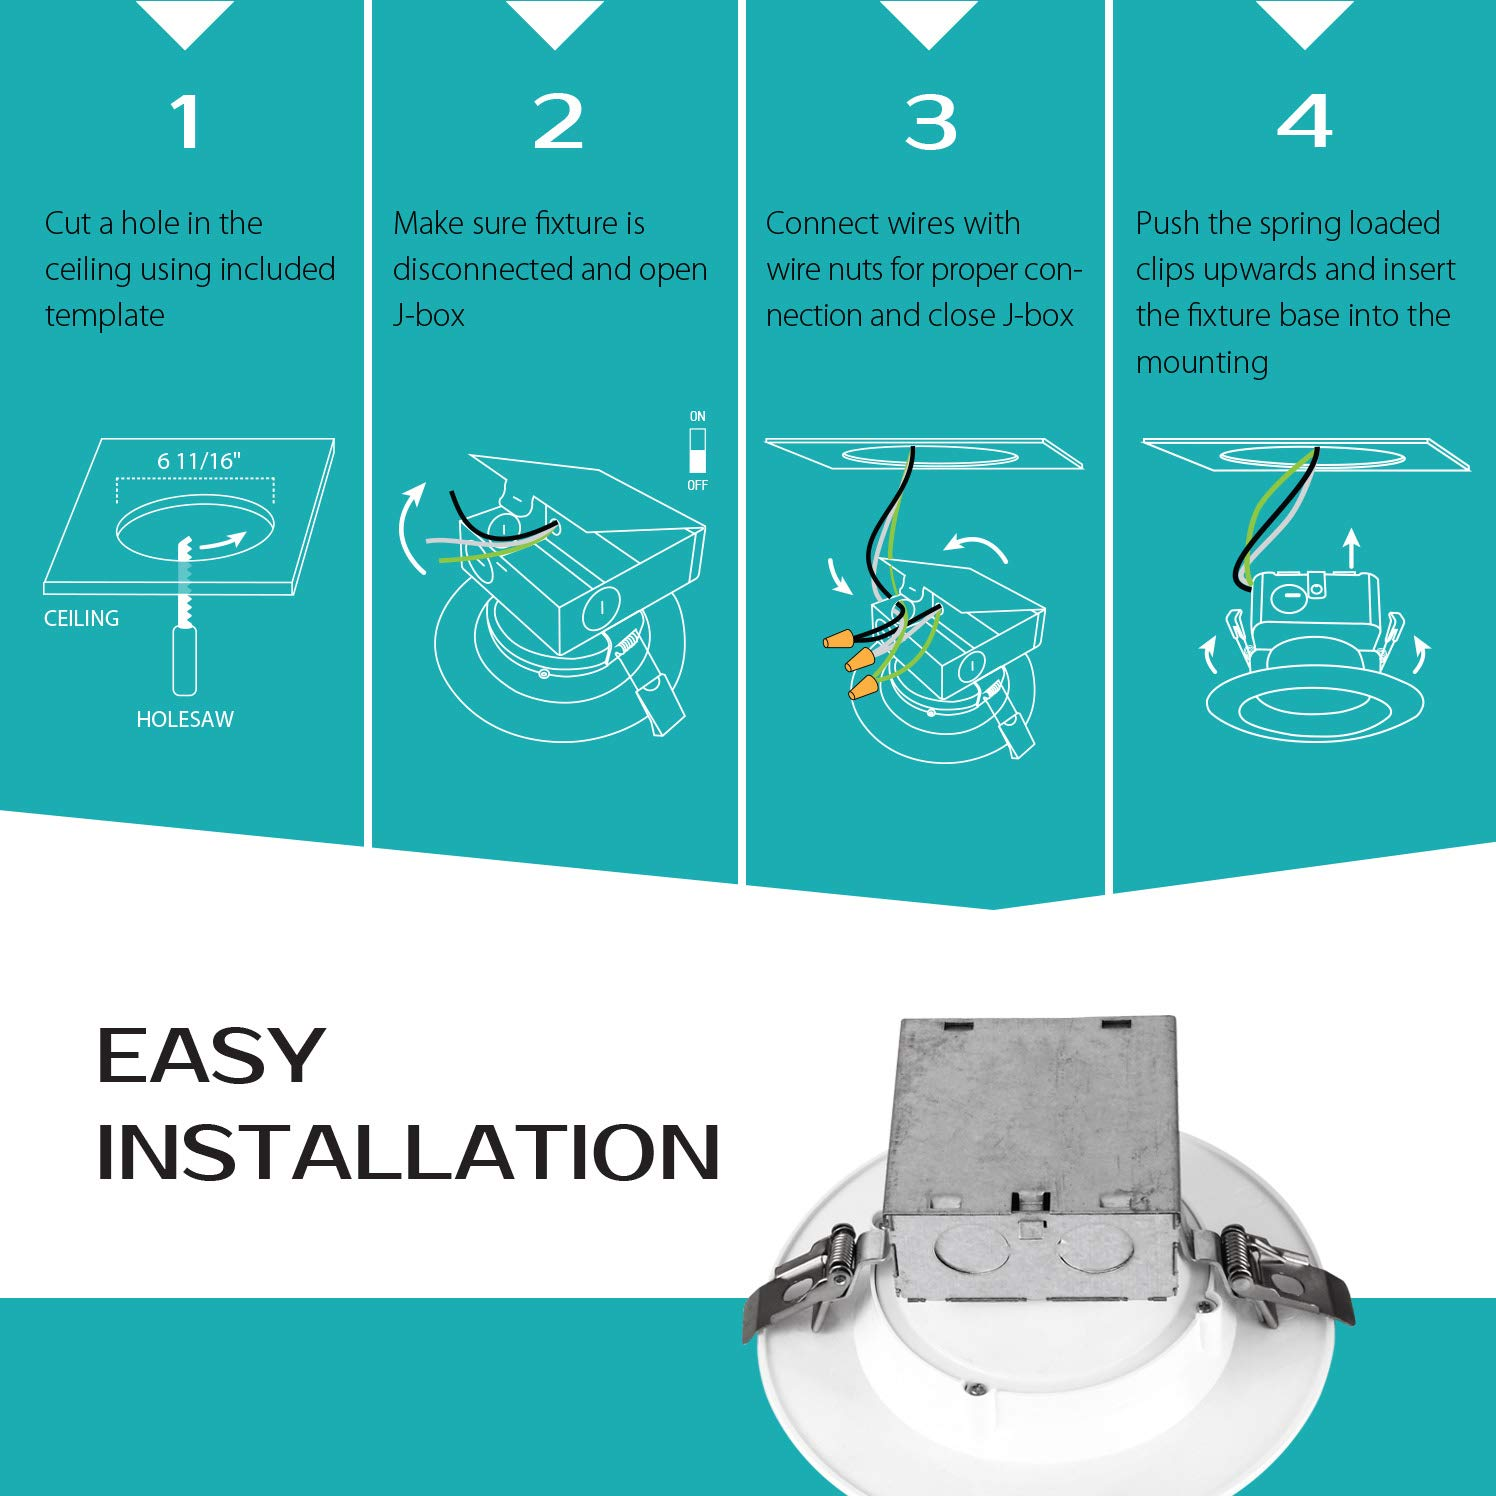 LUXTER (12 Pack) 6 inch LED Ceiling Recessed Downlight With Junction Box, LED Canless Downlight, Baffle Trim, Dimmable, IC Rated, 15W(120Watt Repl) 4000K 1100Lm Wet Location ETL and Energy Star Listed by Luxter (Image #5)